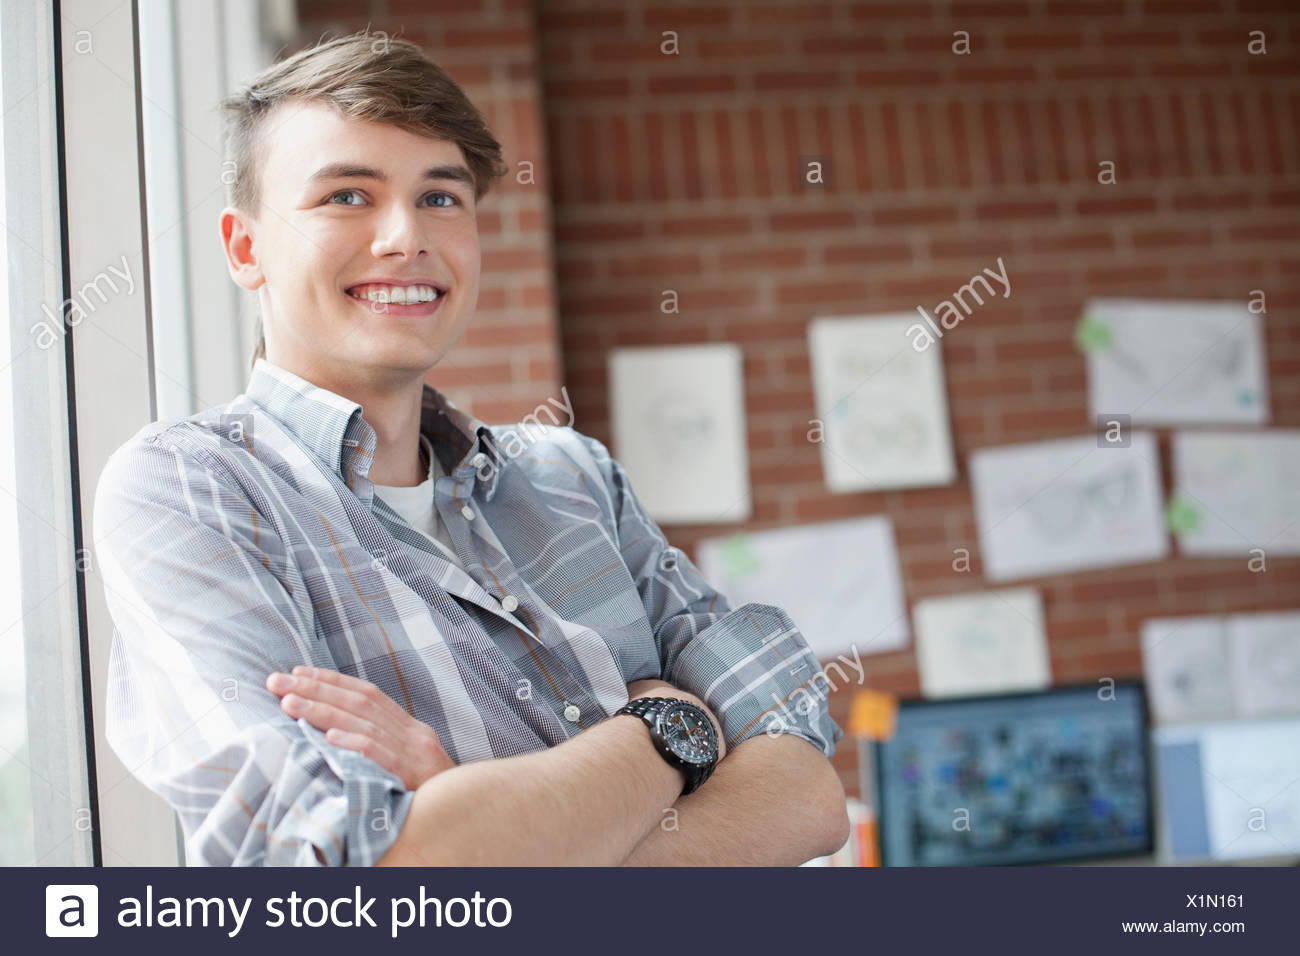 young male industrial designer in studio - Stock Image